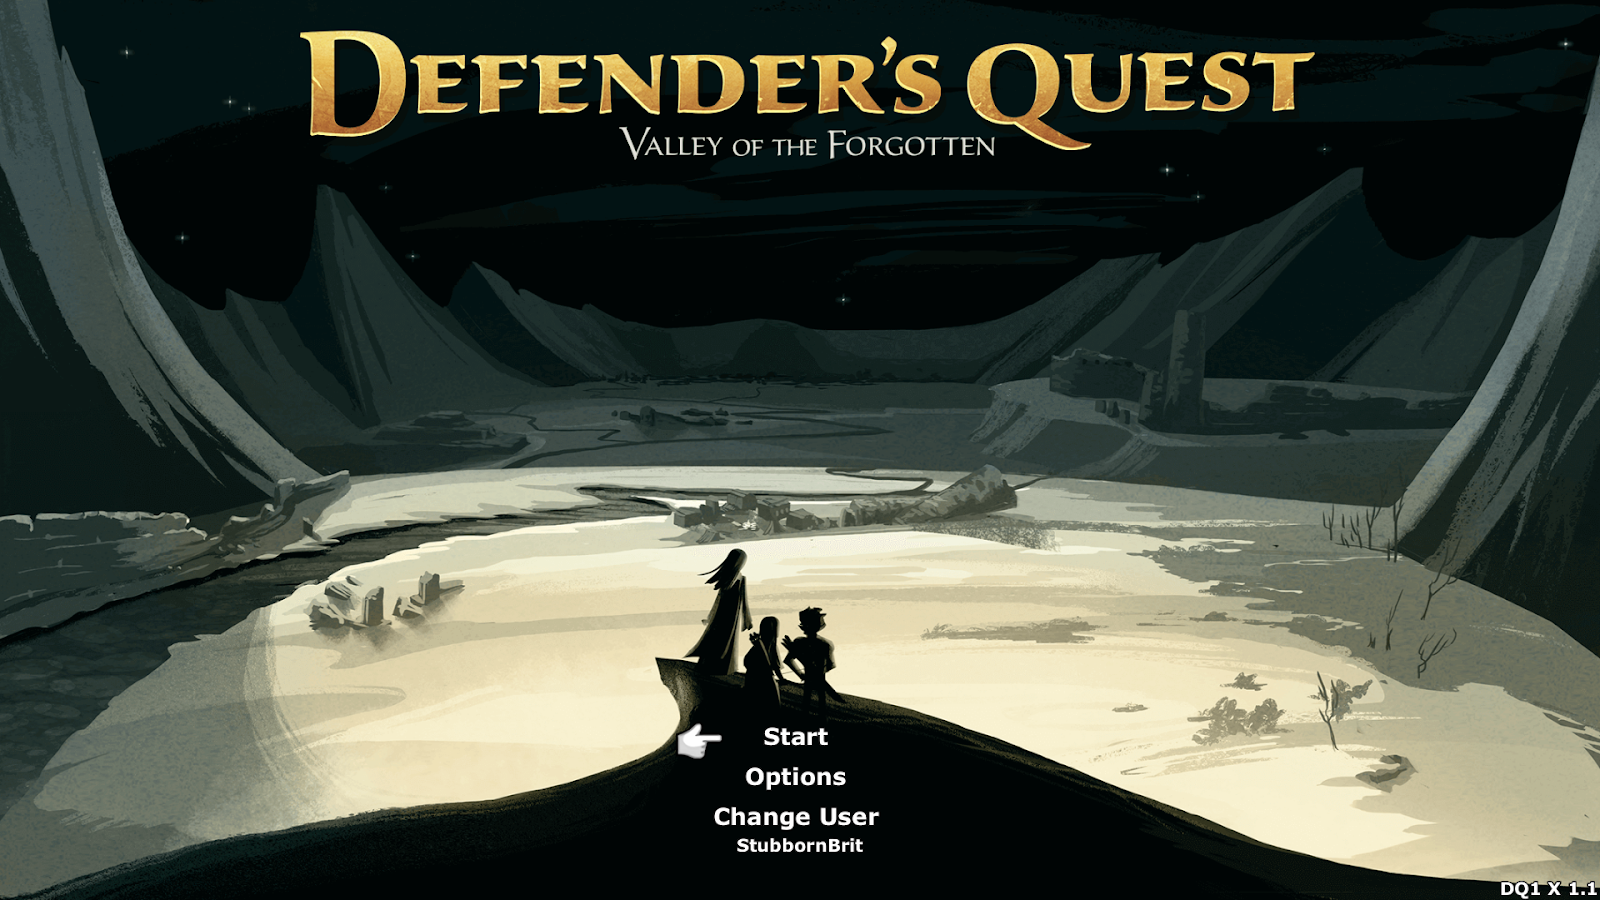 Defender's Quest: Valley of the Forgotten DX (Xbox)